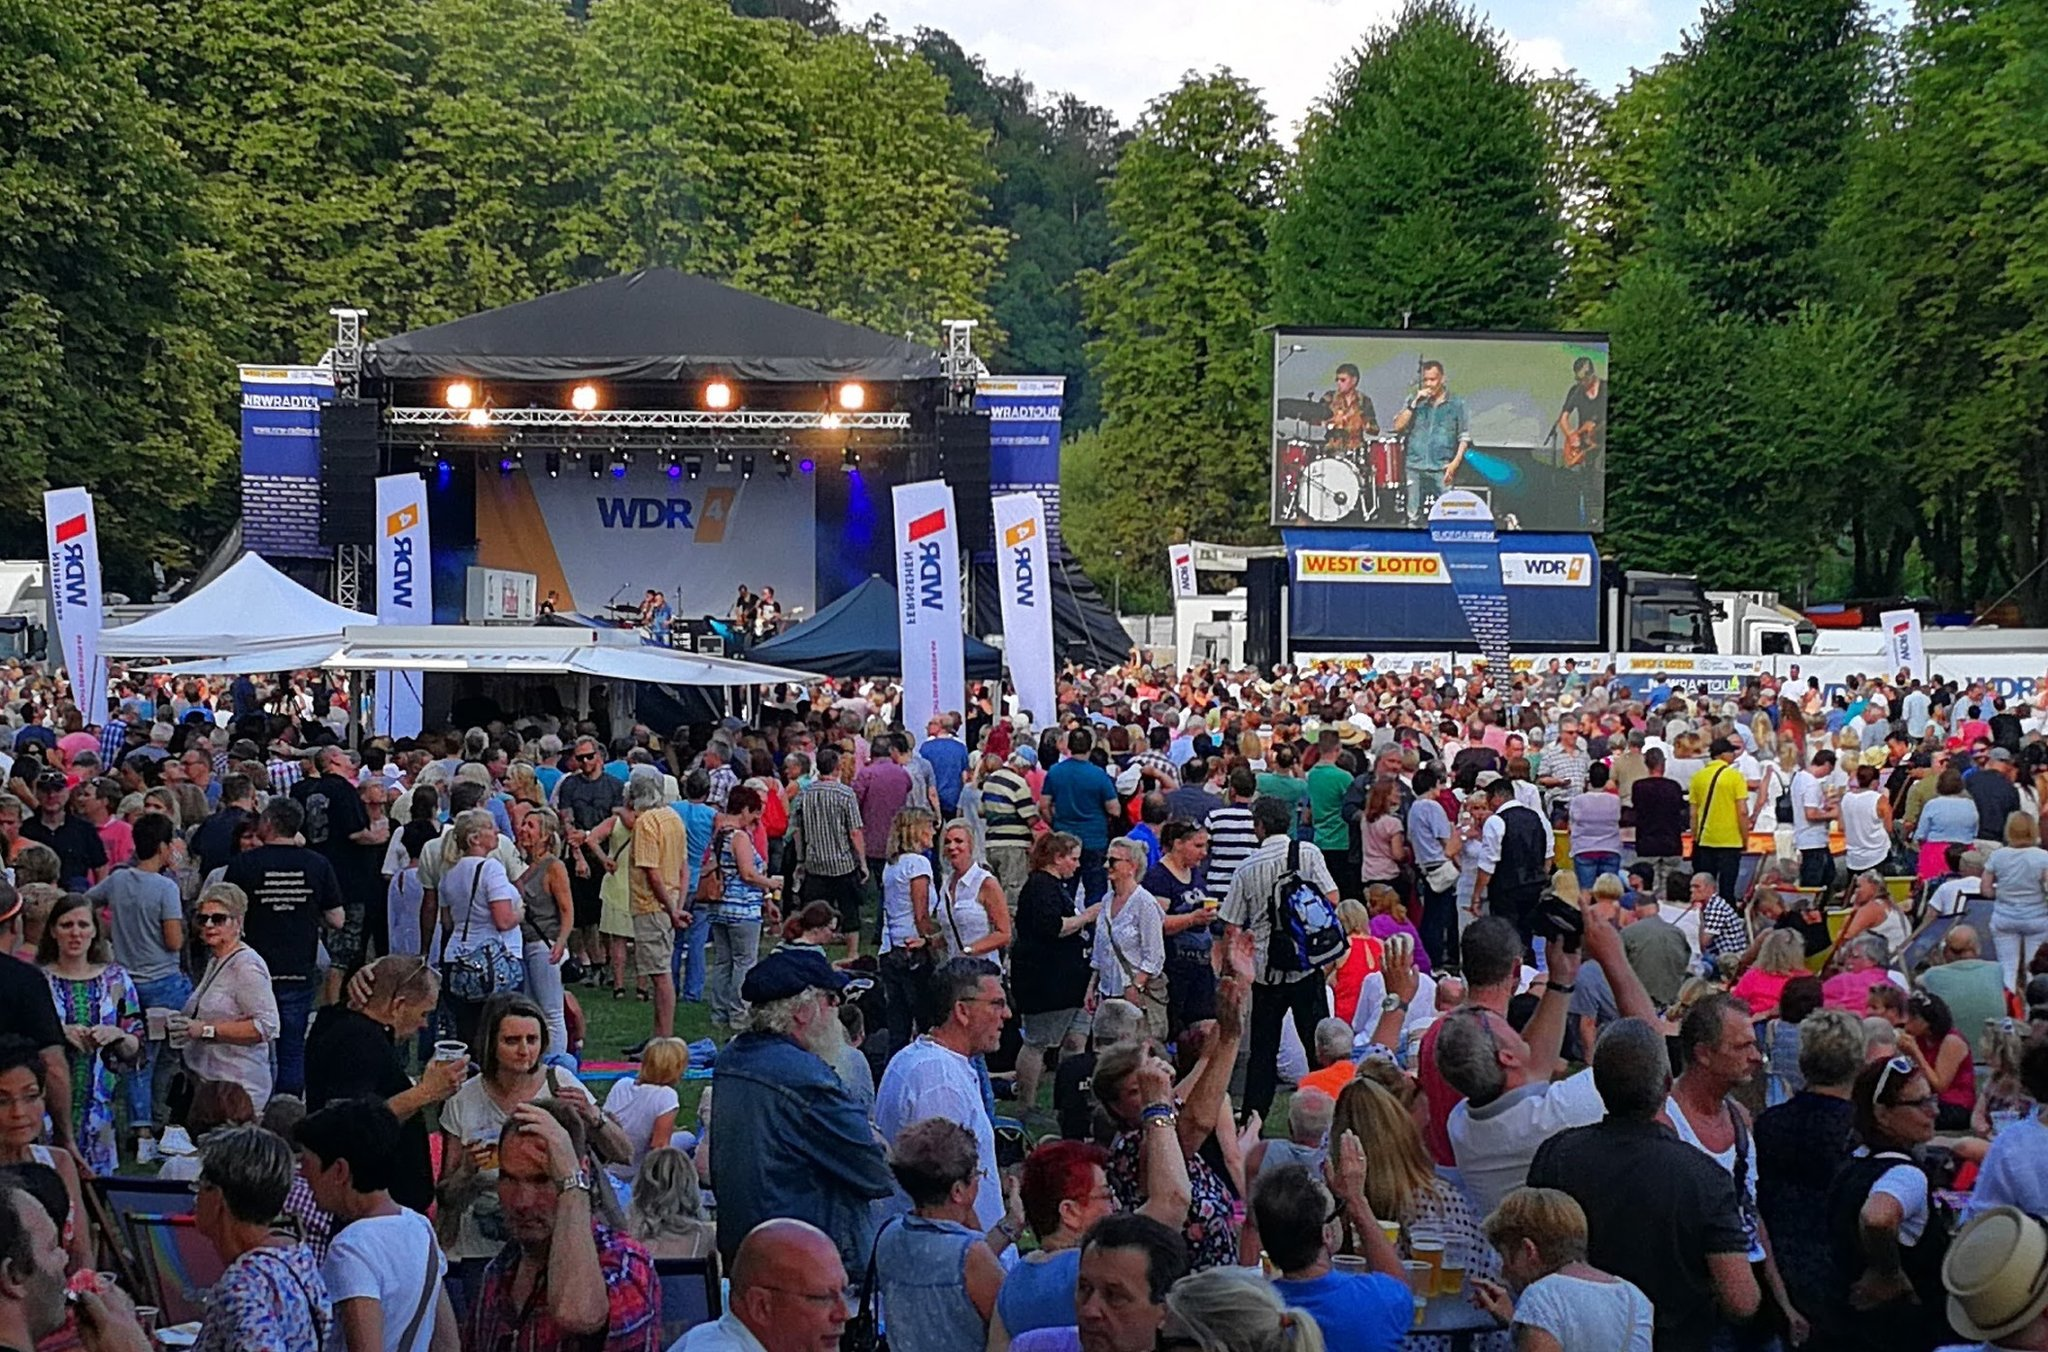 Wdr 4 Sommer Open Air